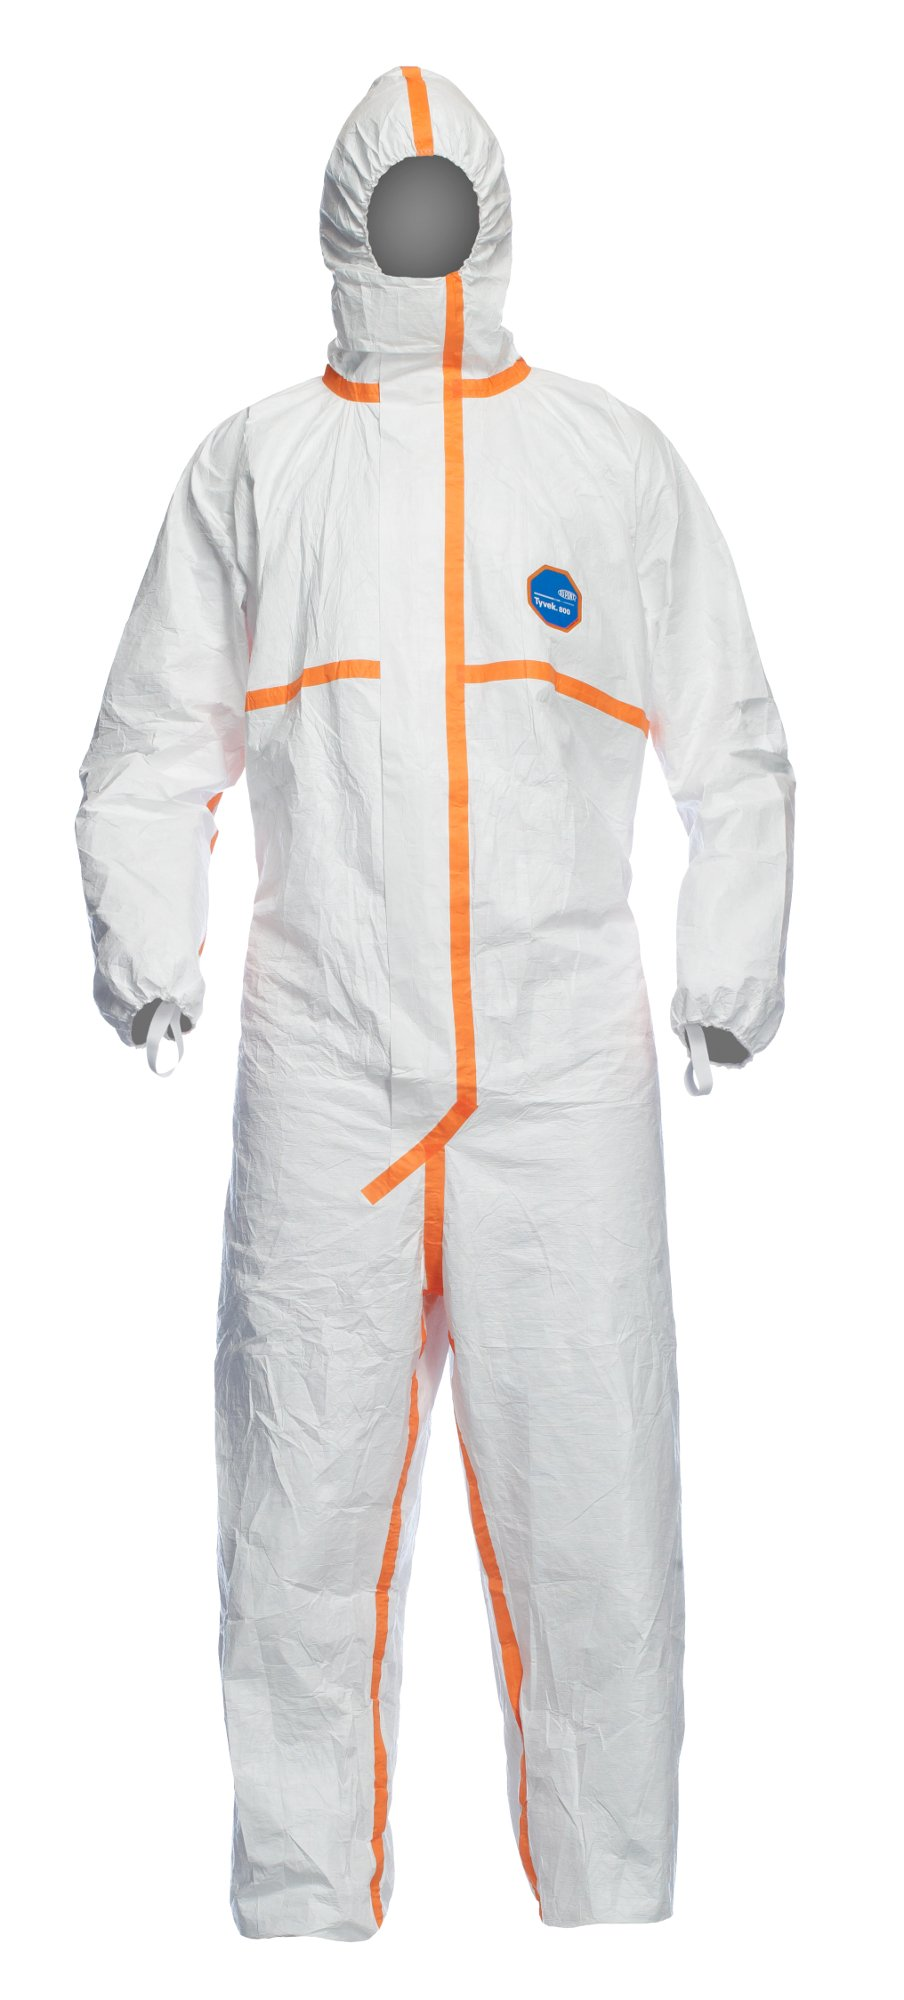 DuPont Tyvek 800J TJ198T Chemical Protective Coverall Suit, CE Certified, Cat III, Type 3/4/5/6, Sealed Bag, 4X-Large, White